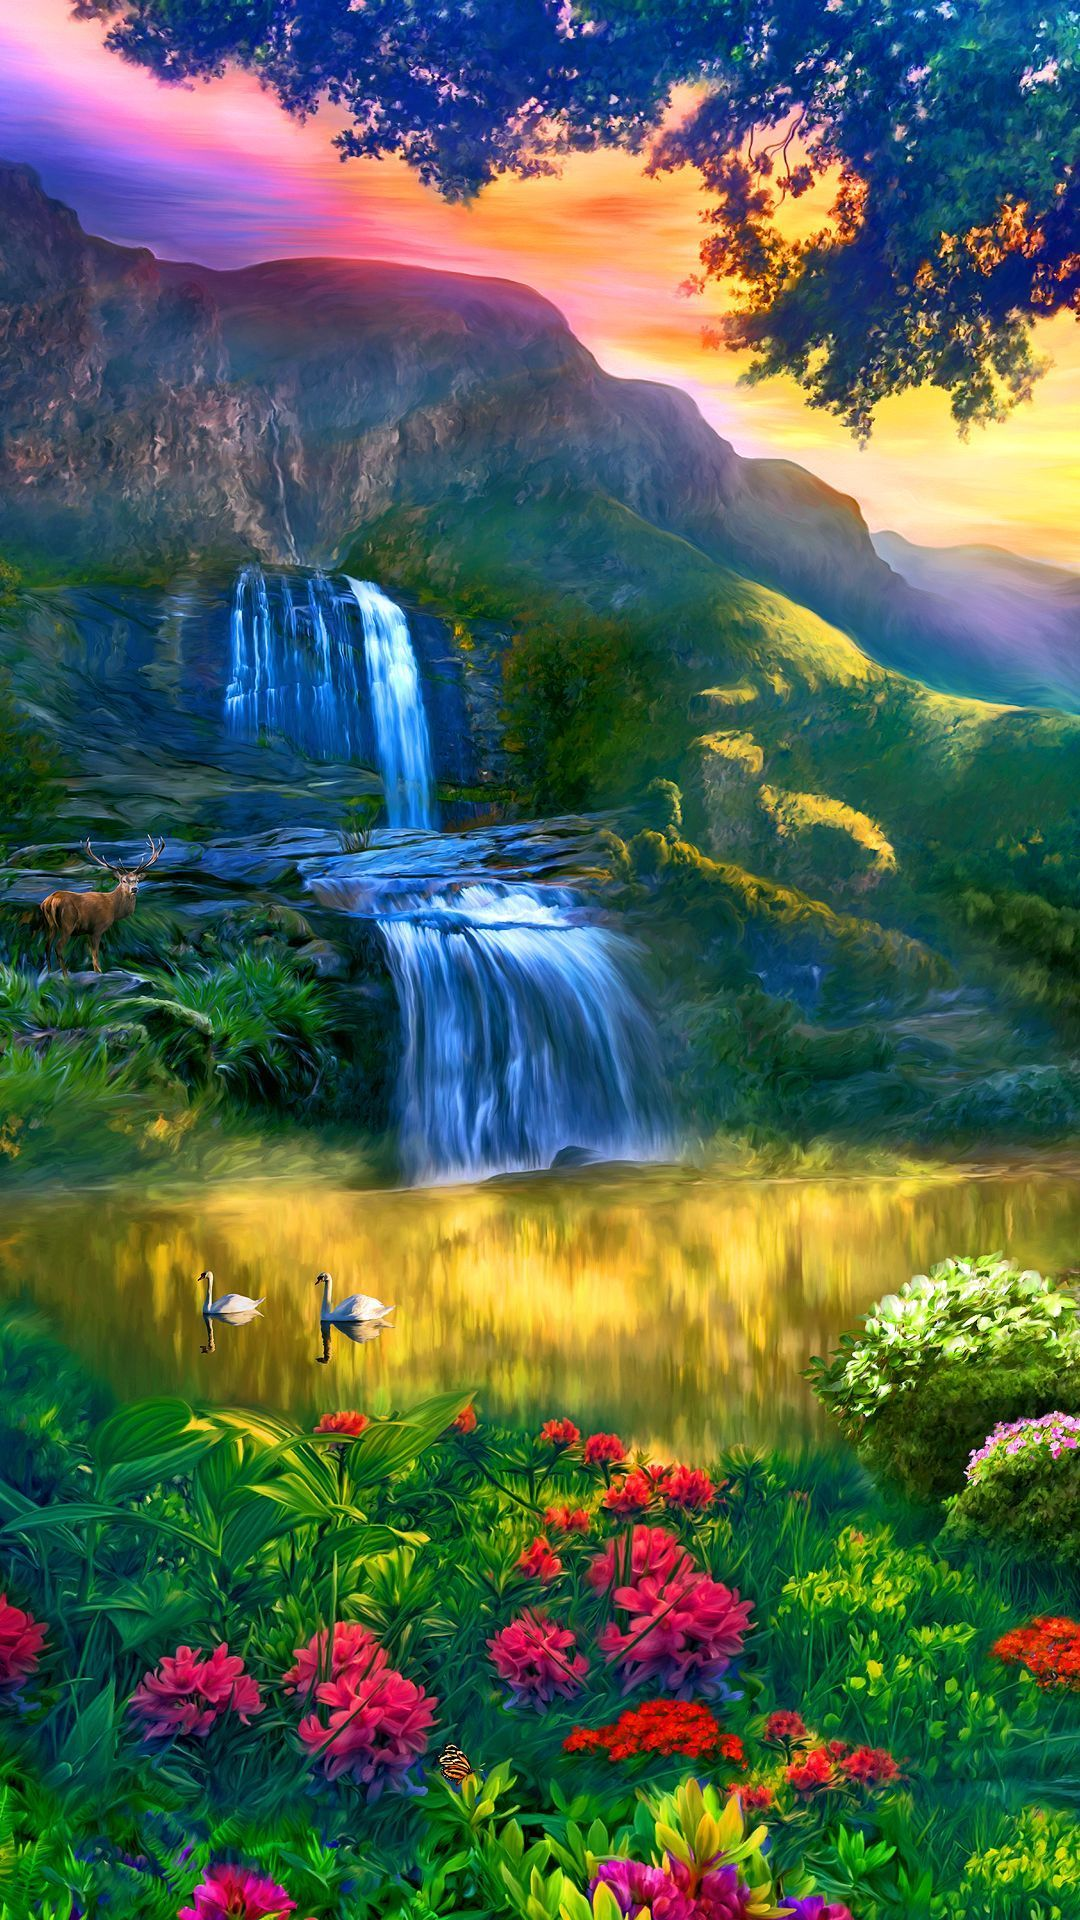 Beautiful Nature Images : beautiful, nature, images, Beautiful, Nature, Photography, Wallpapers, Backgrounds, WallpaperAccess